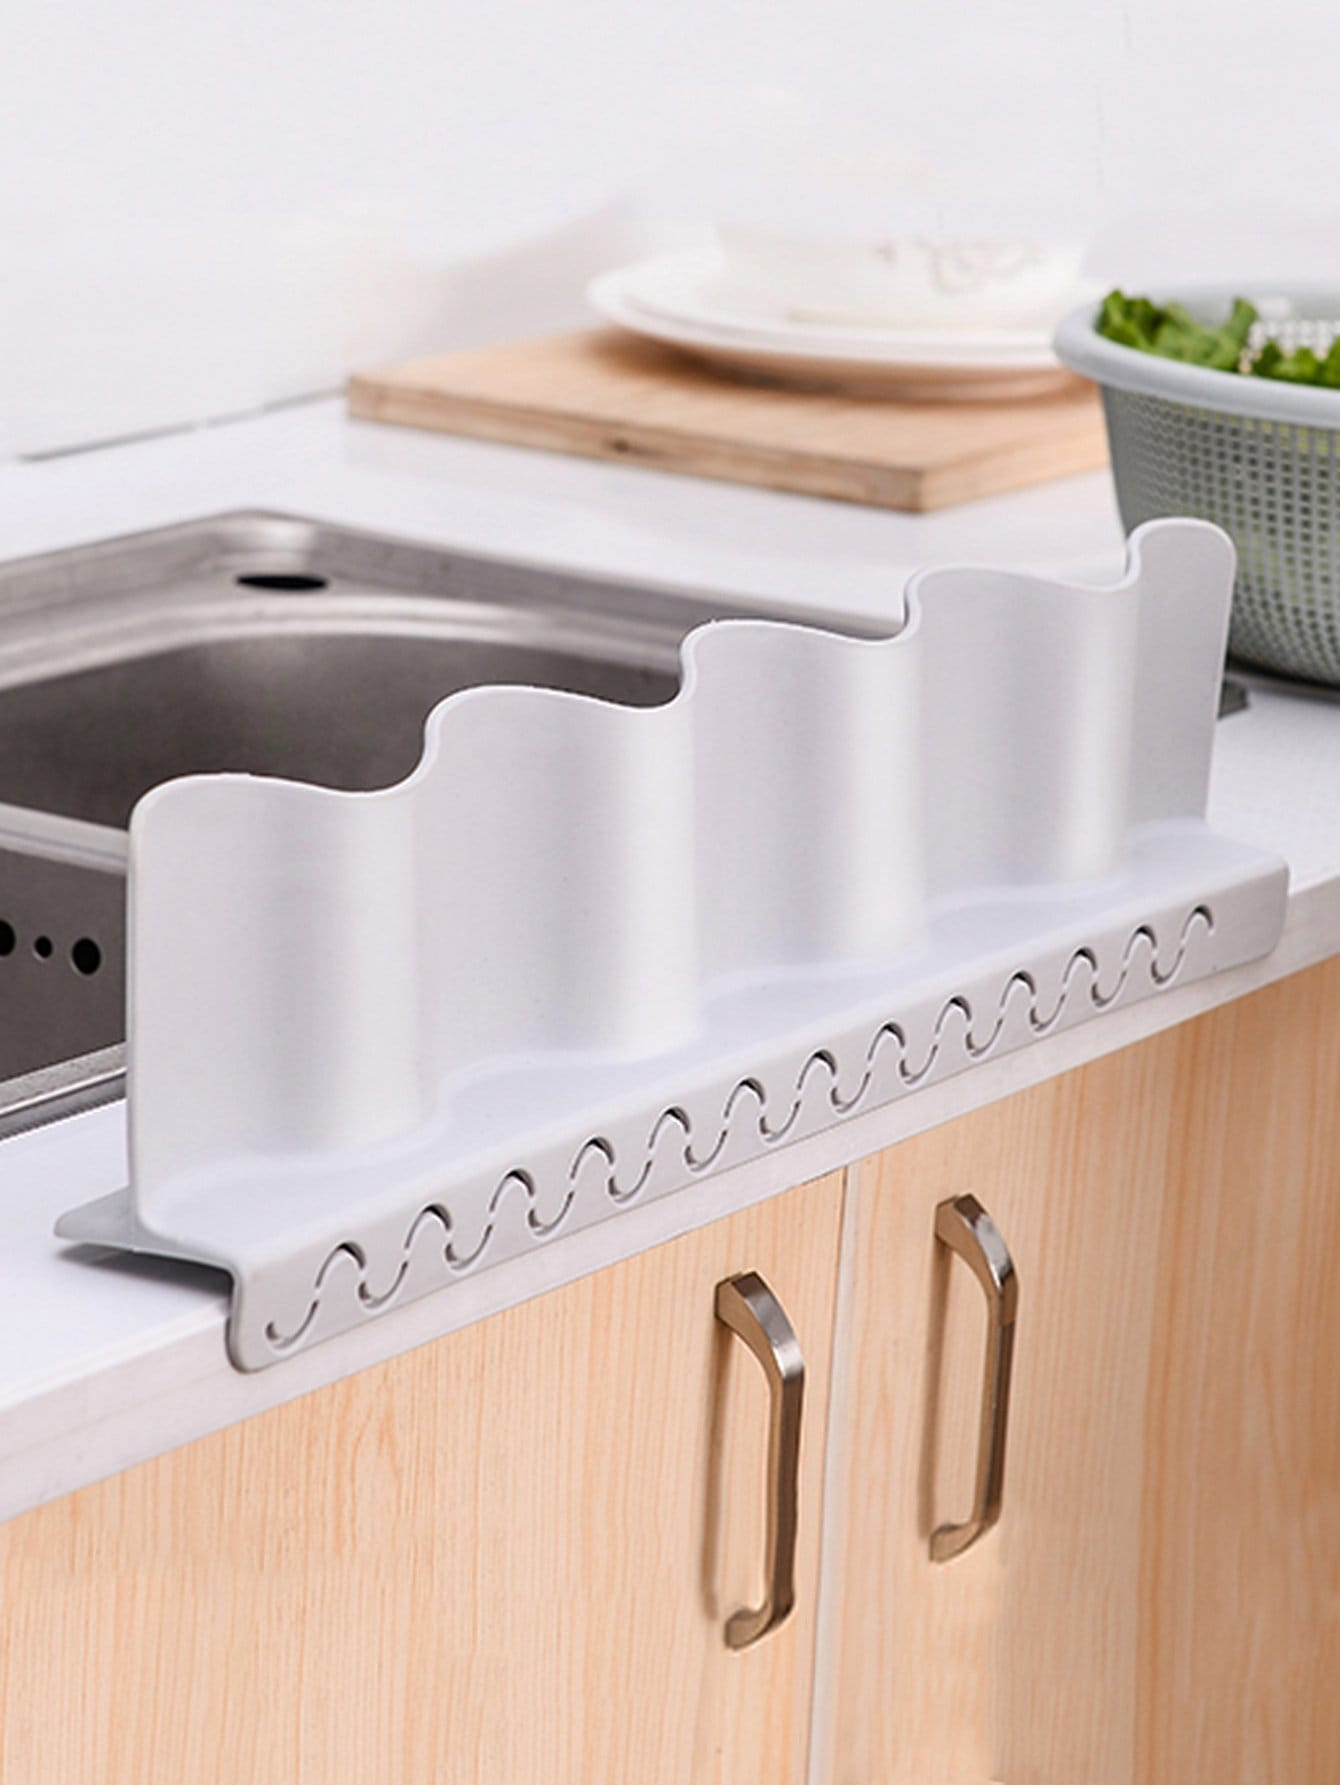 splash guard kitchen sink faucet with soap dispenser guardfor women romwe